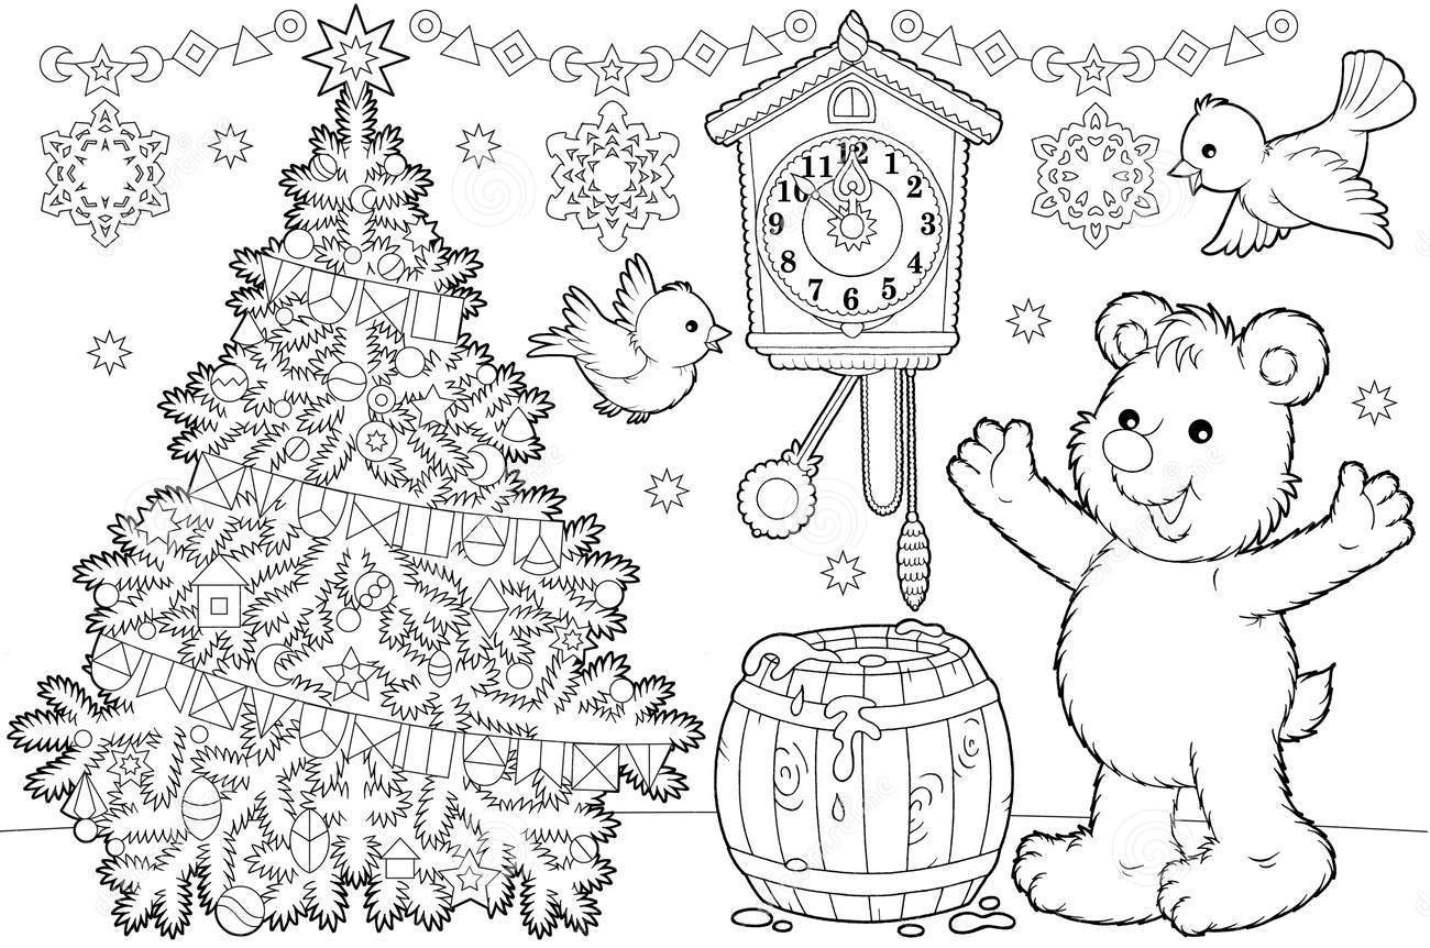 http://www.dreamstime.com/stock-photo-christmas-coloring-page-image14265270